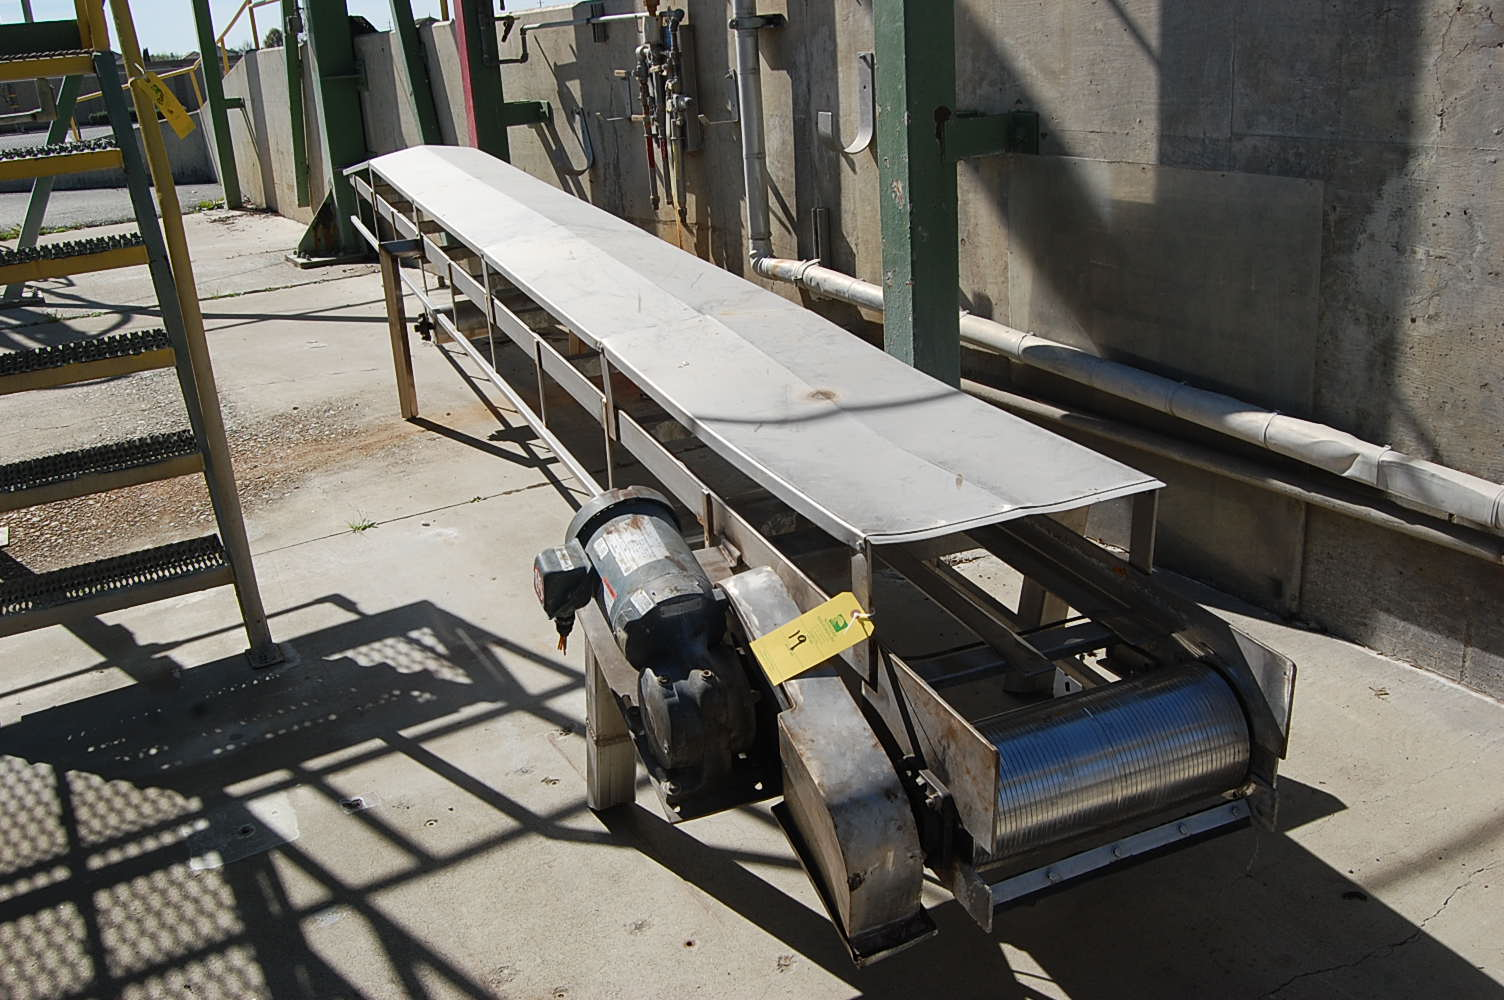 Stainless steel motorized belt conveyor 20 ft length x 18 Motorized conveyor belt